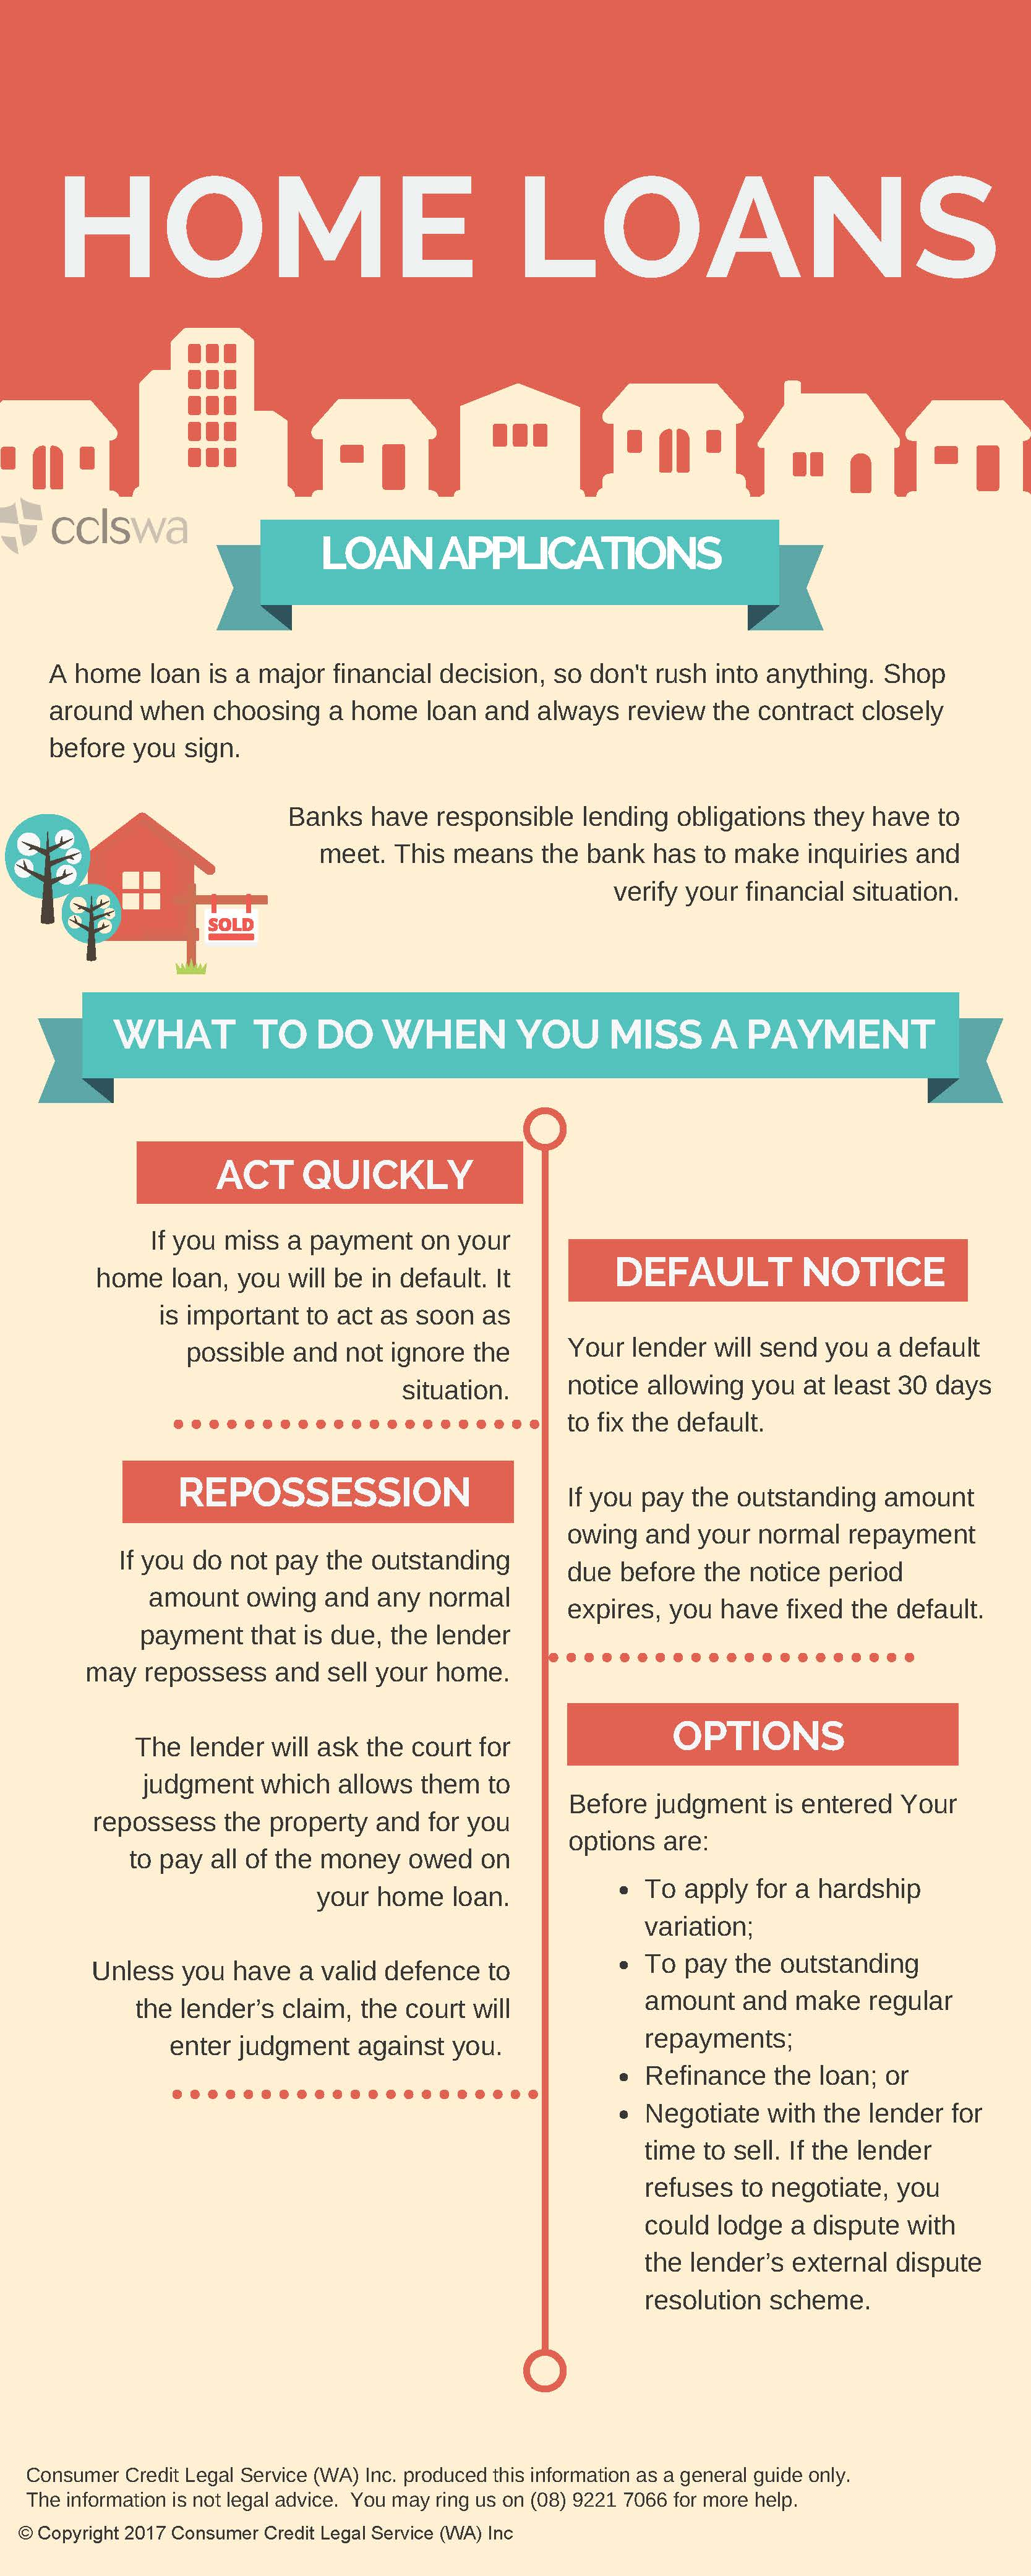 20170620 DOC Infographic - Home Loans